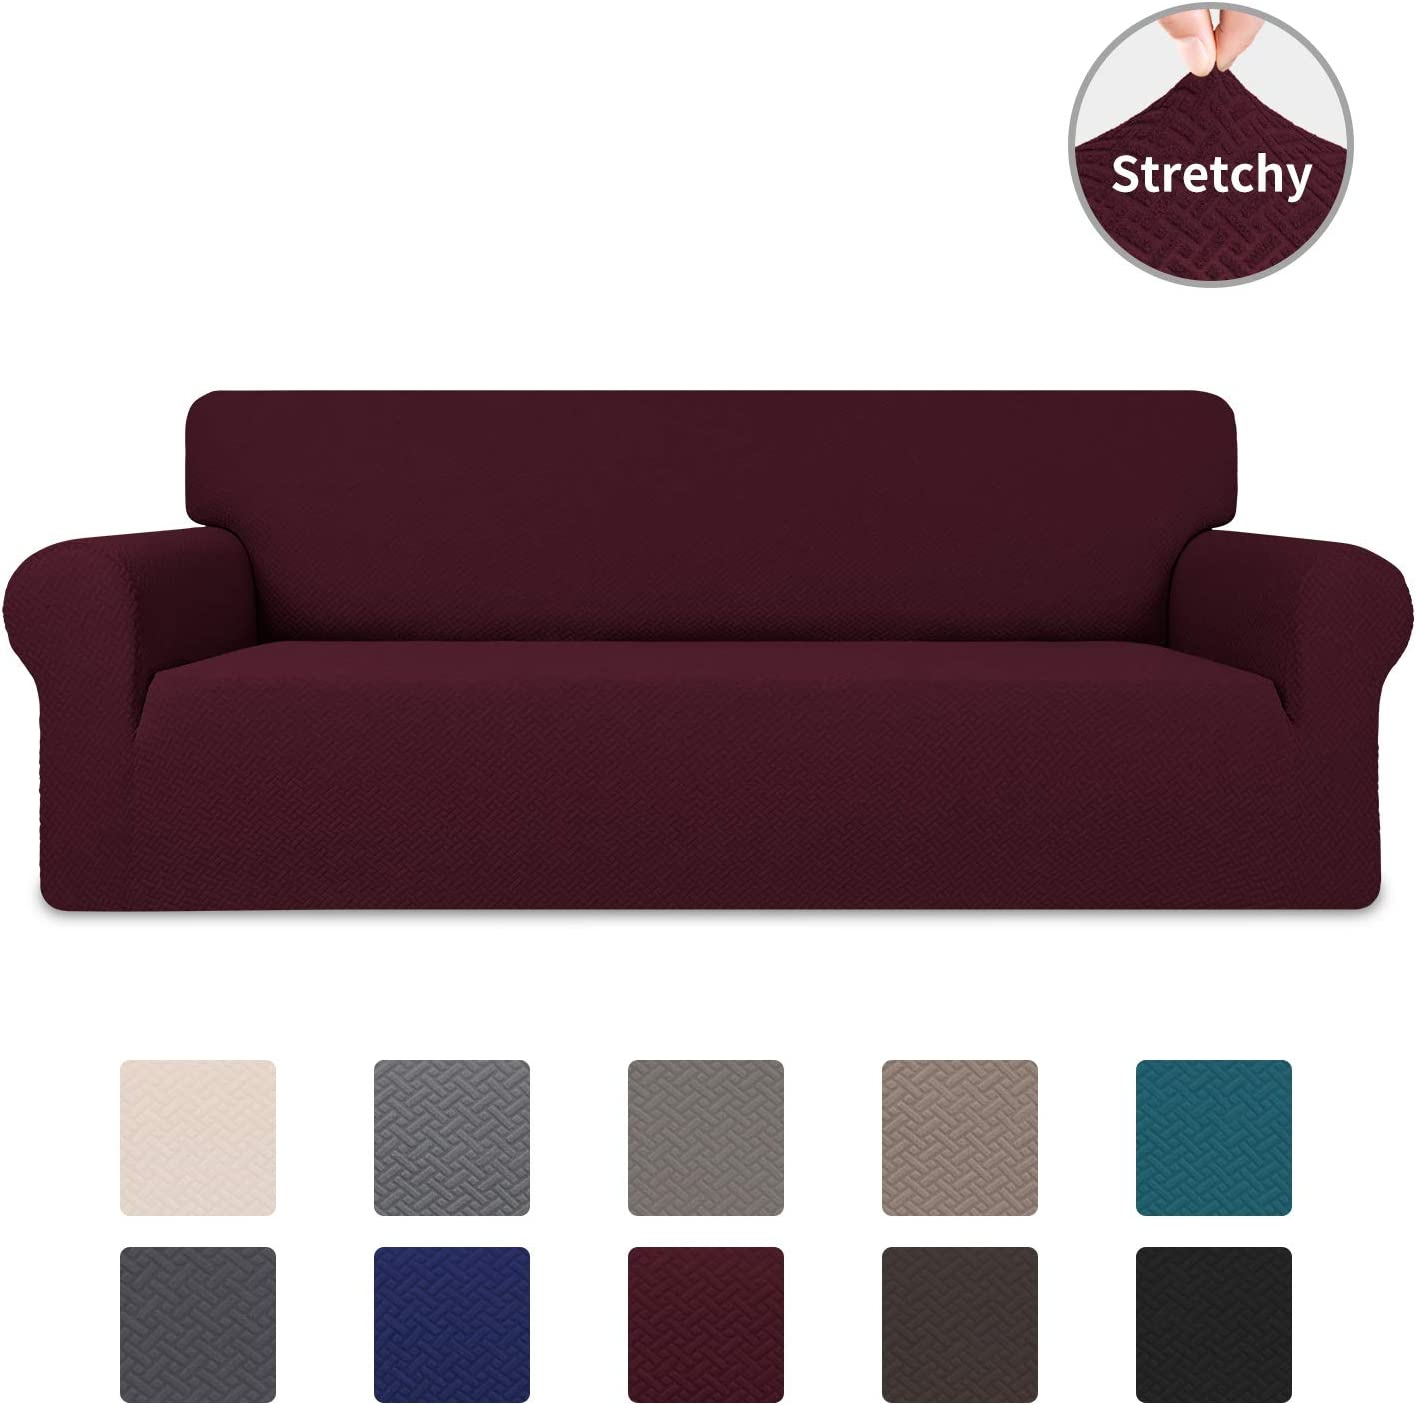 Easy-Going Stretch Jacquard Couch Cover, 1-Piece Soft Sofa Cover, Sofa Slipcover with Anti-Slip Foams, Washable Furniture Protector for Kids, Dogs, Cats (Sofa, Wine)